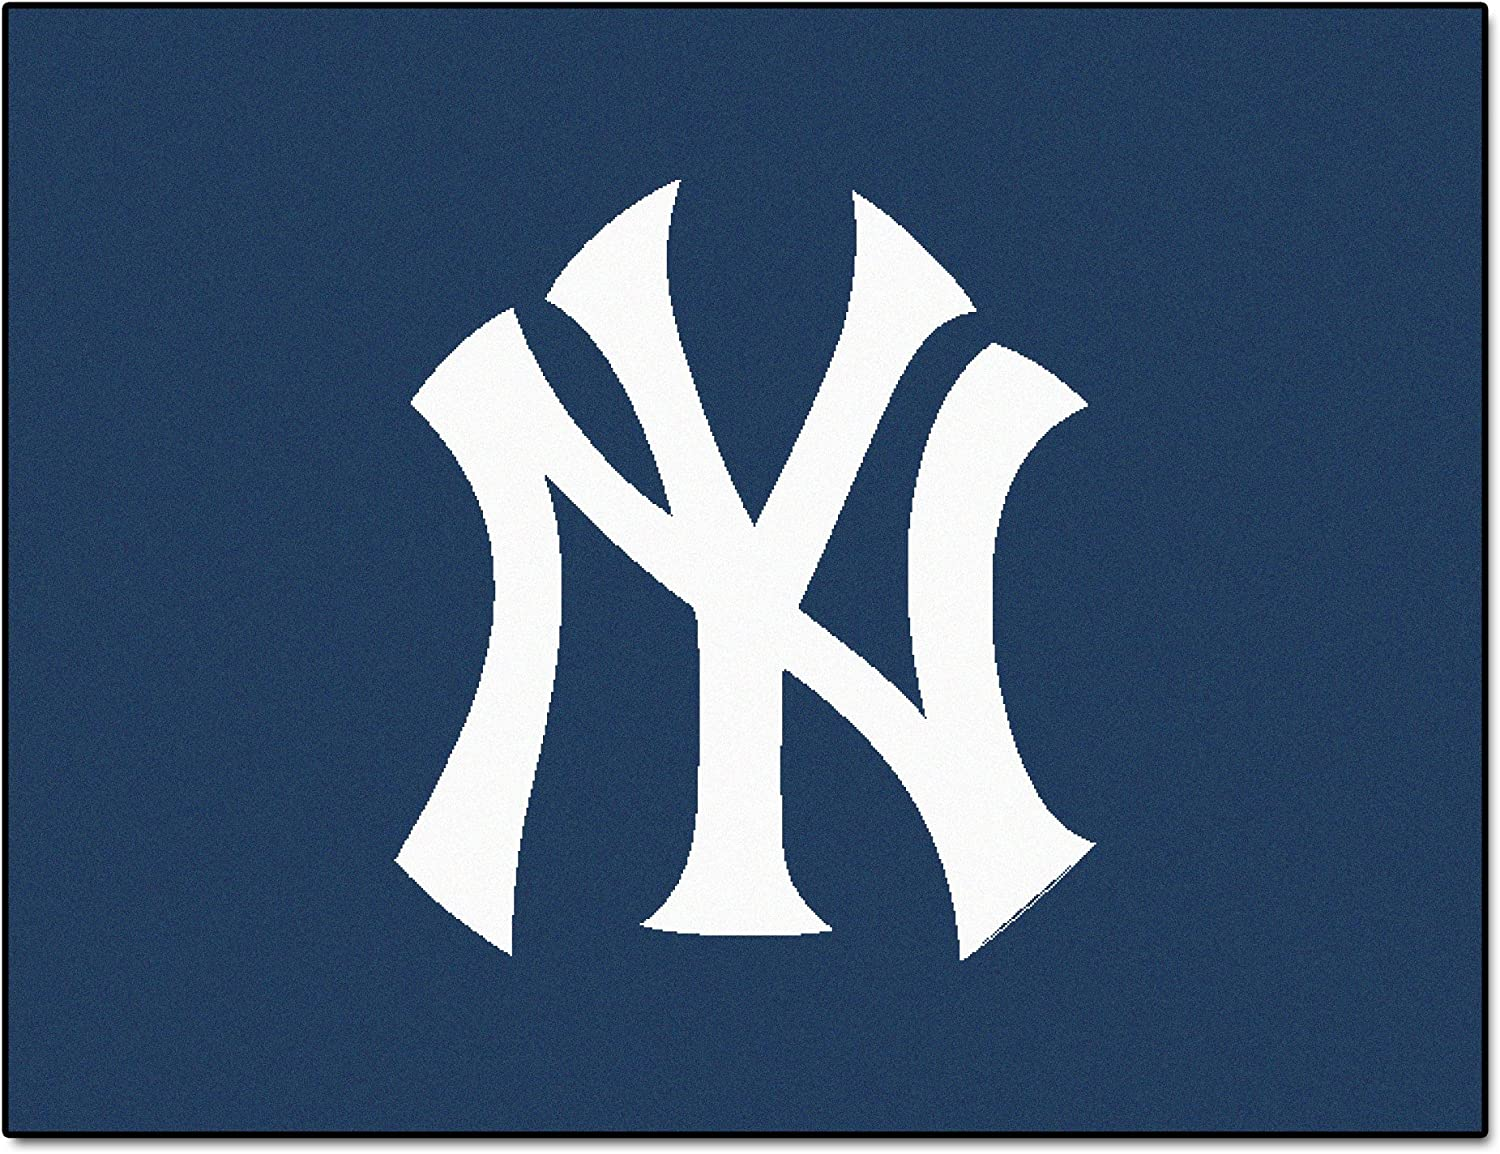 FANMATS MLB New York Yankees All-Star Face Rug Max 47% OFF Nylon Sale Special Price